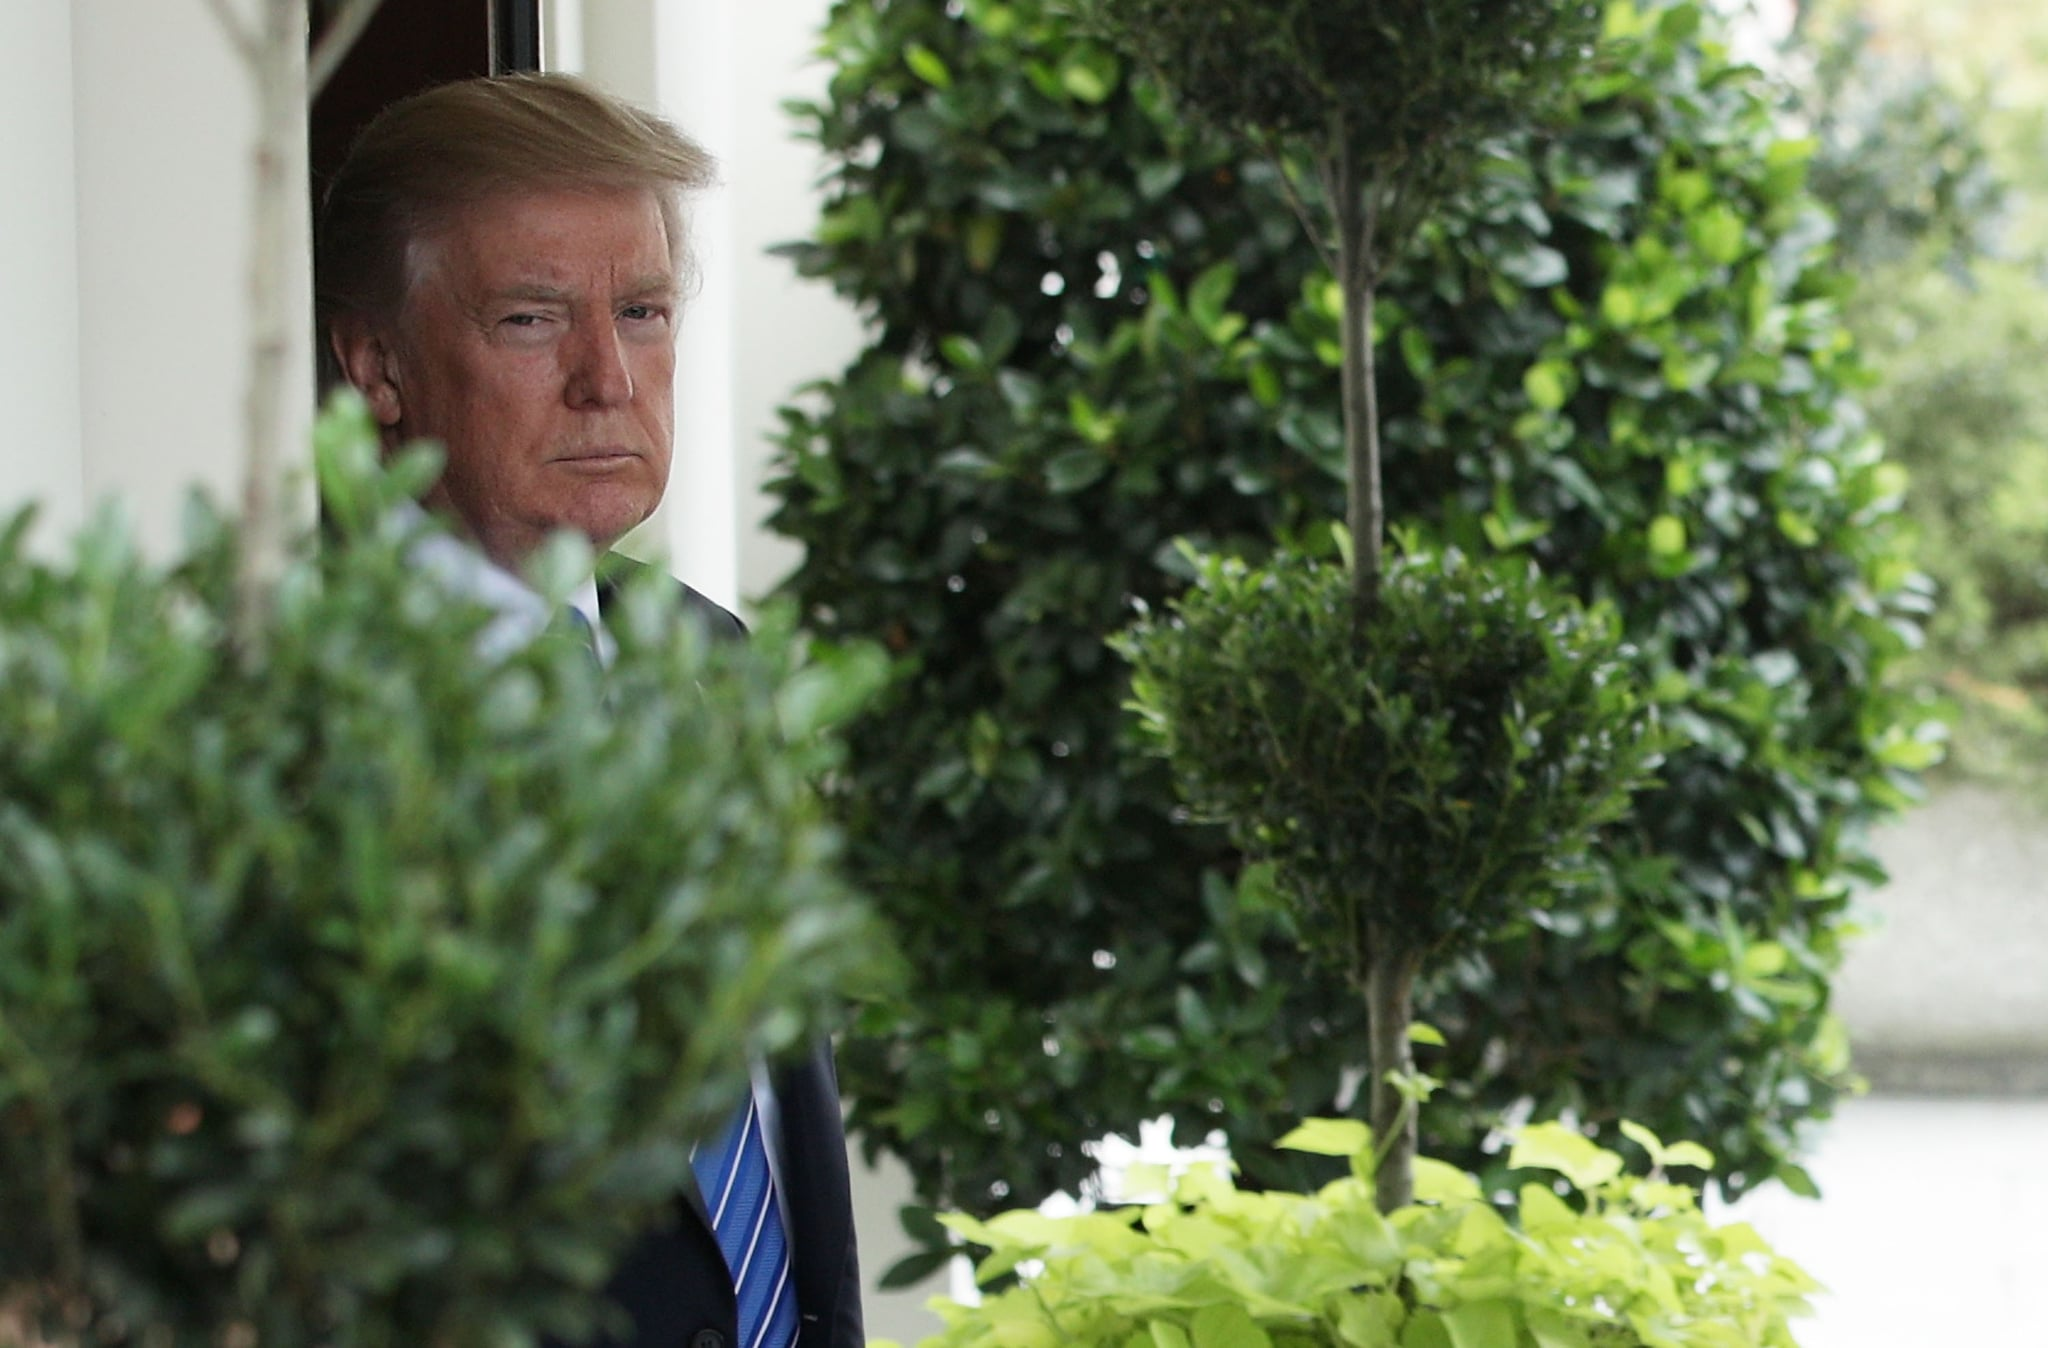 The White House appears to have a serious infestation problem